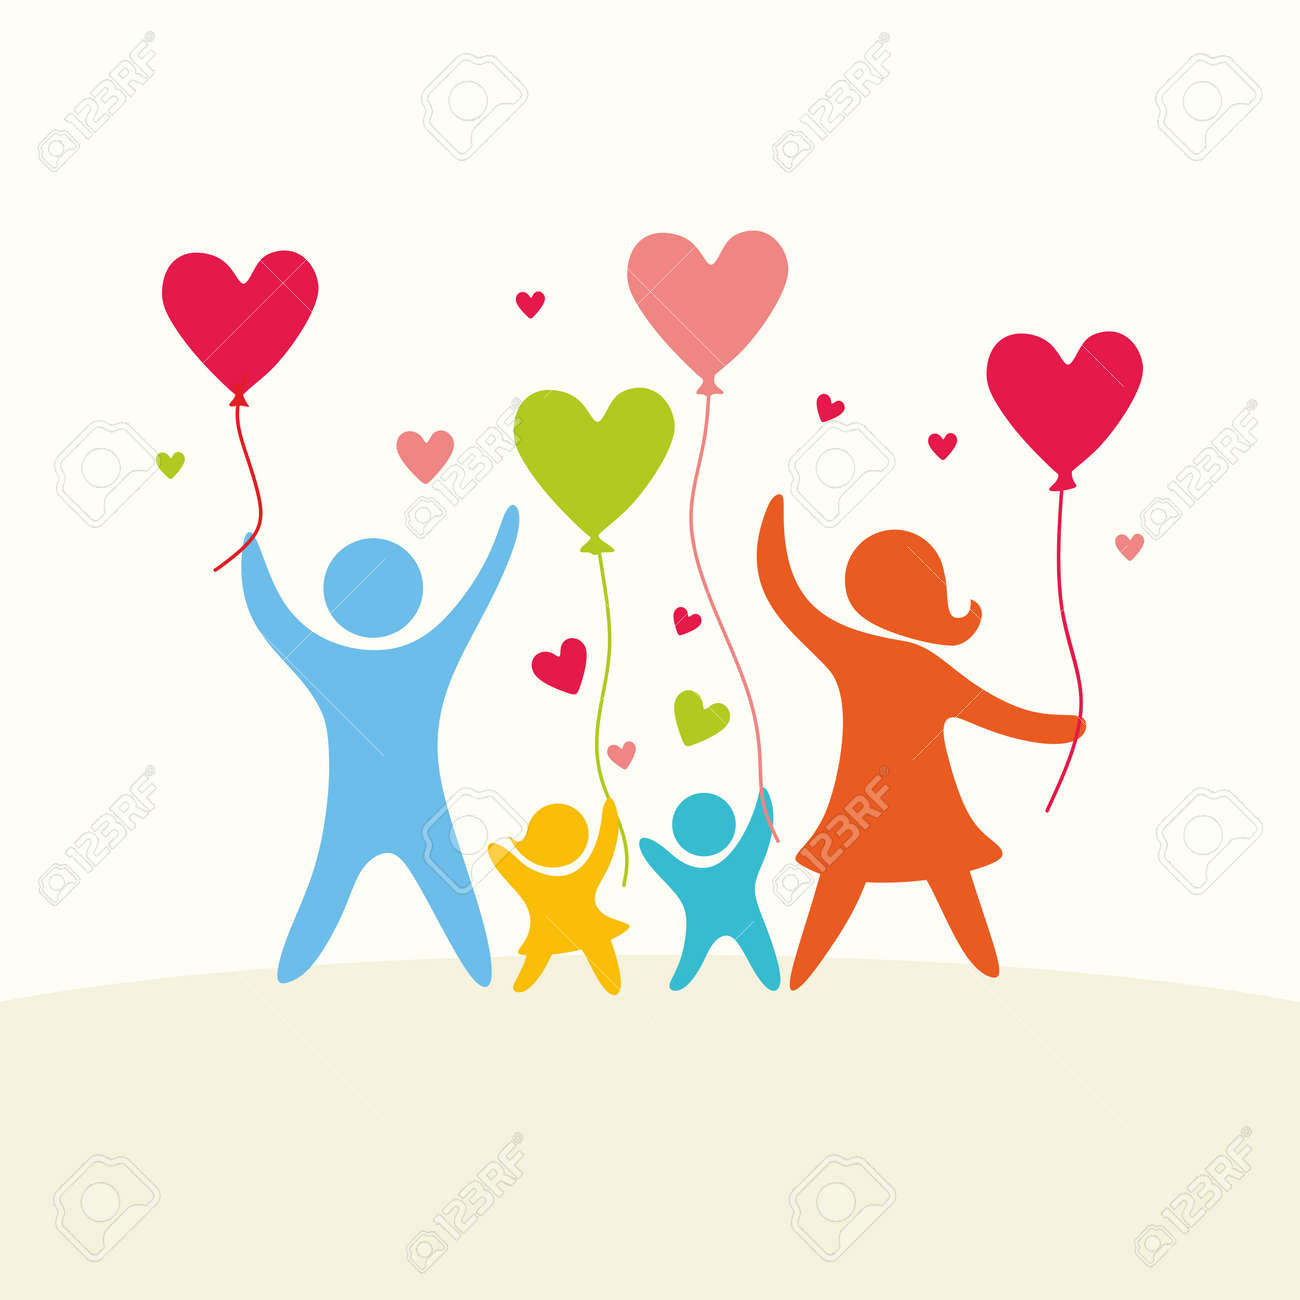 A happy family. Multicolored figures, loving family members. Parents: Mom, Dad, kids. Logo, icon, sign. - 57377460